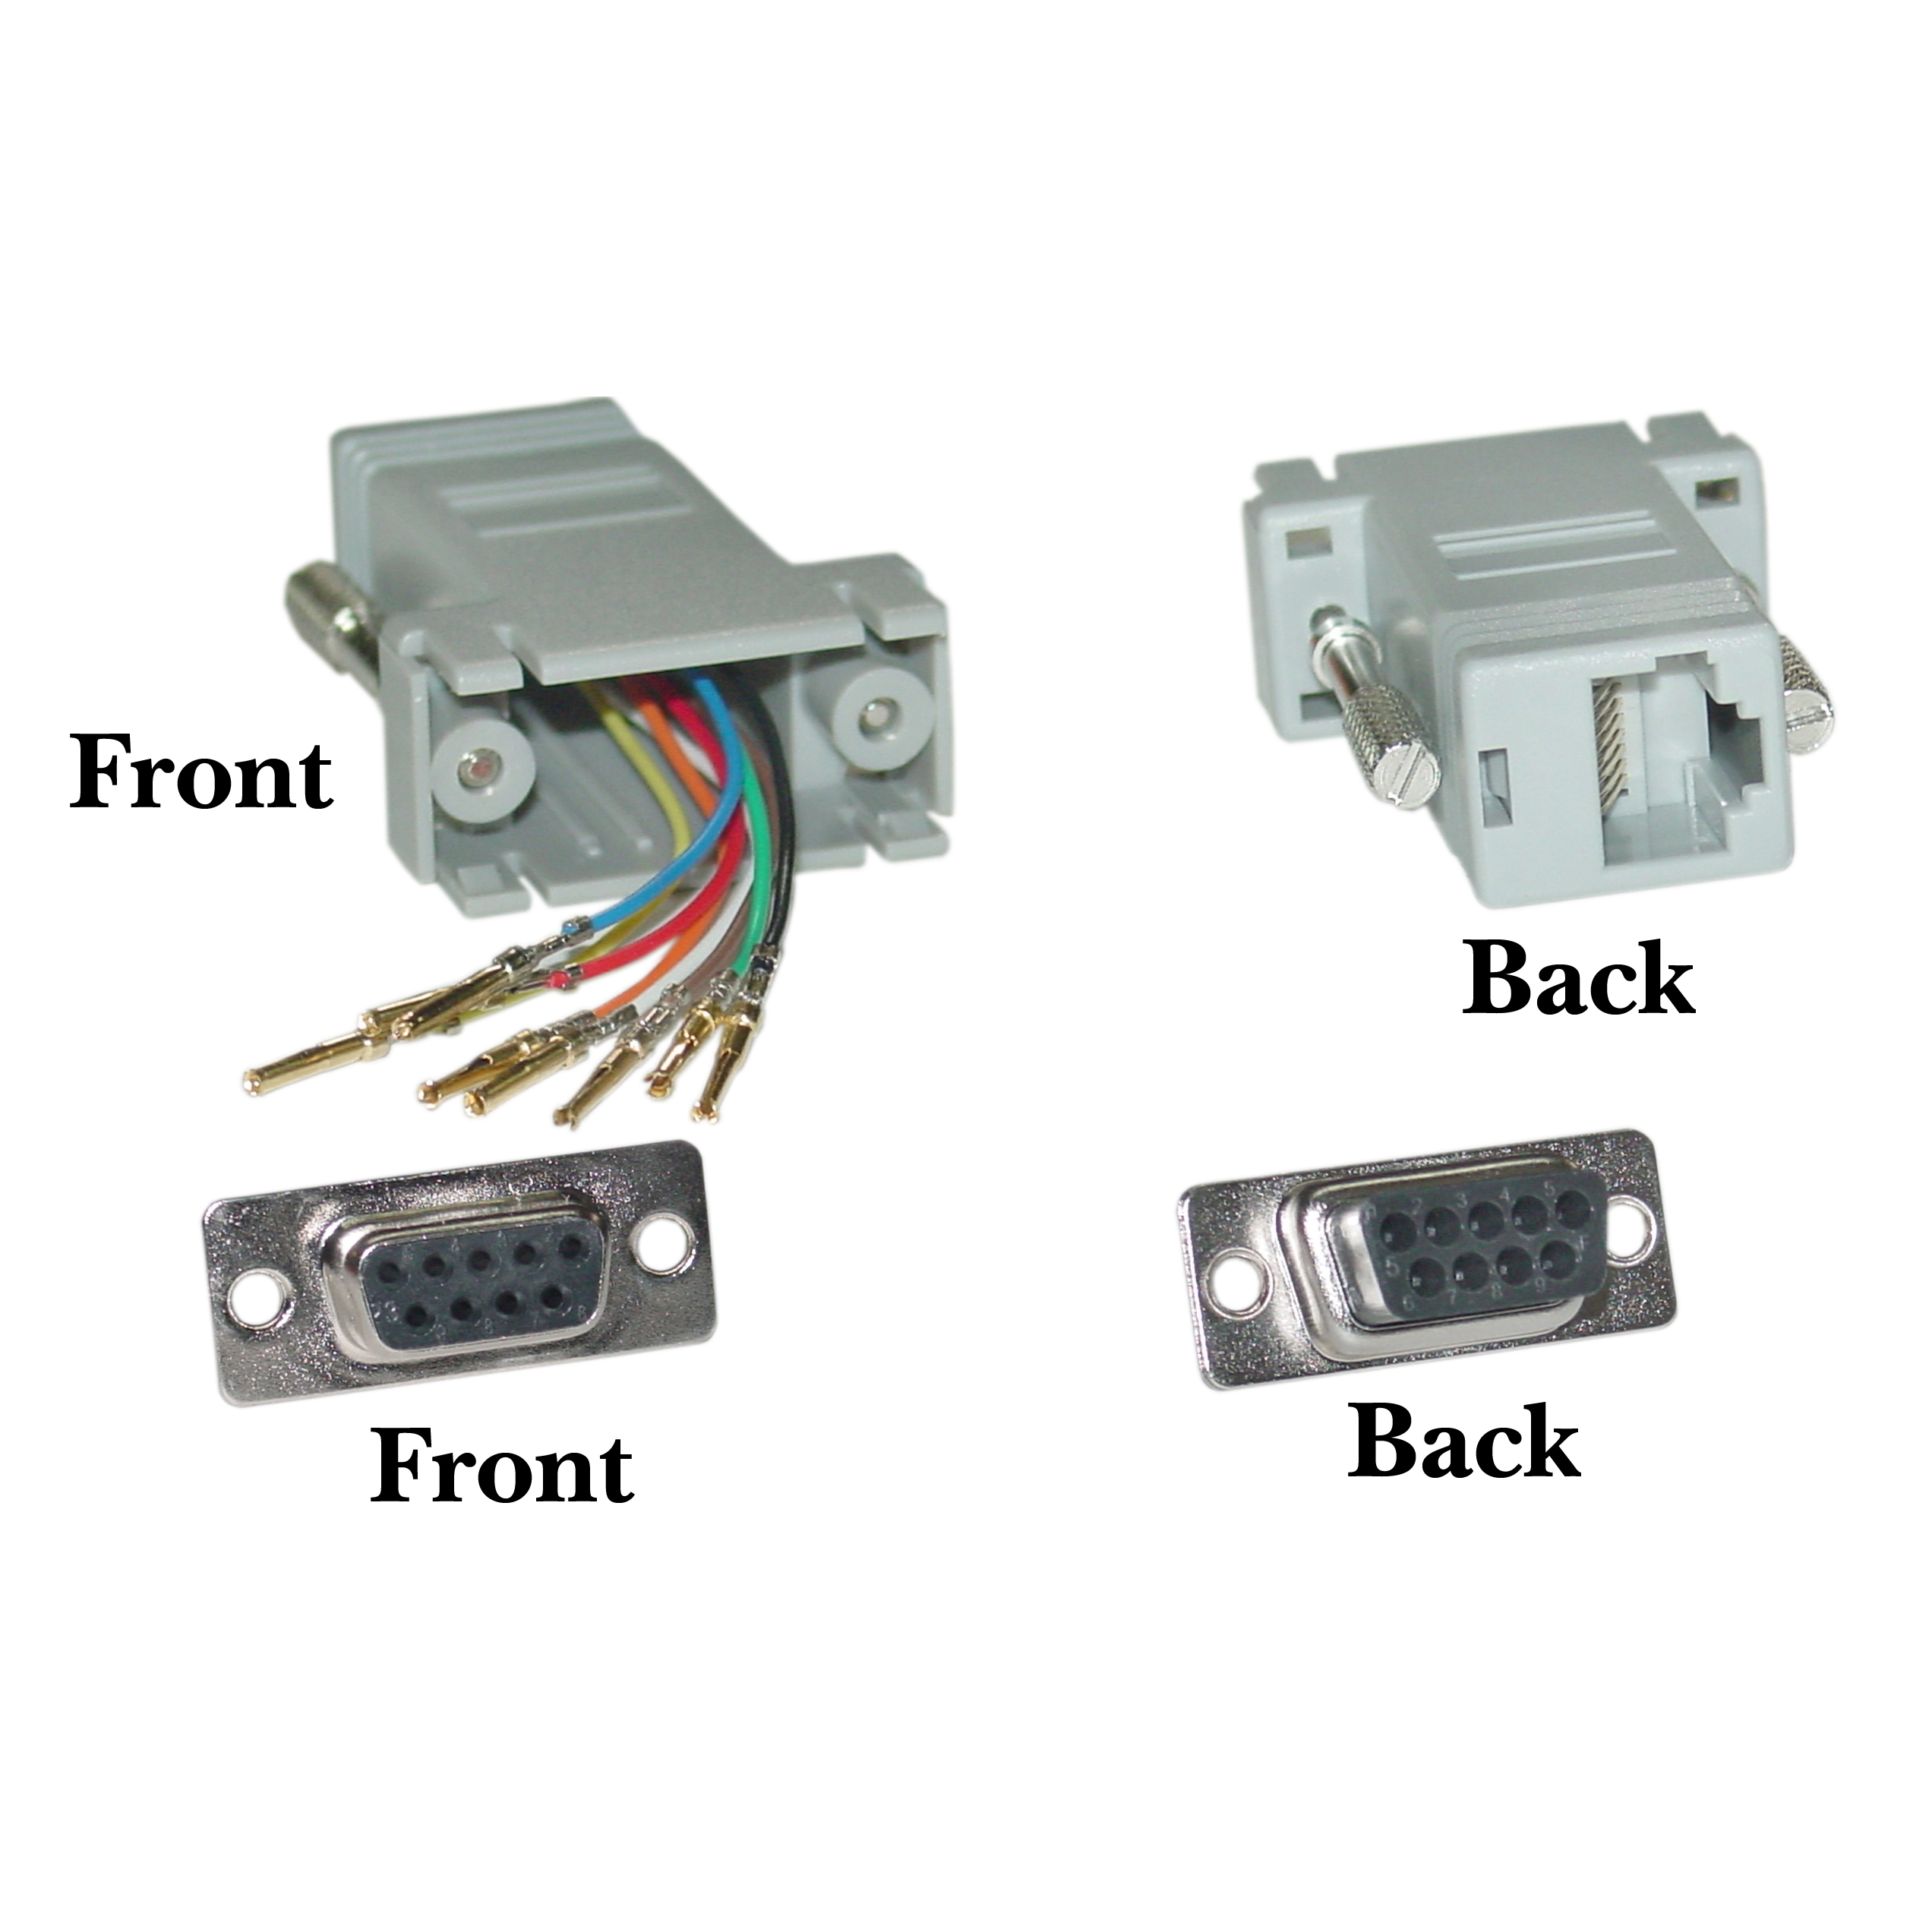 31d1 17400 db9 female to rj45 modular adapter